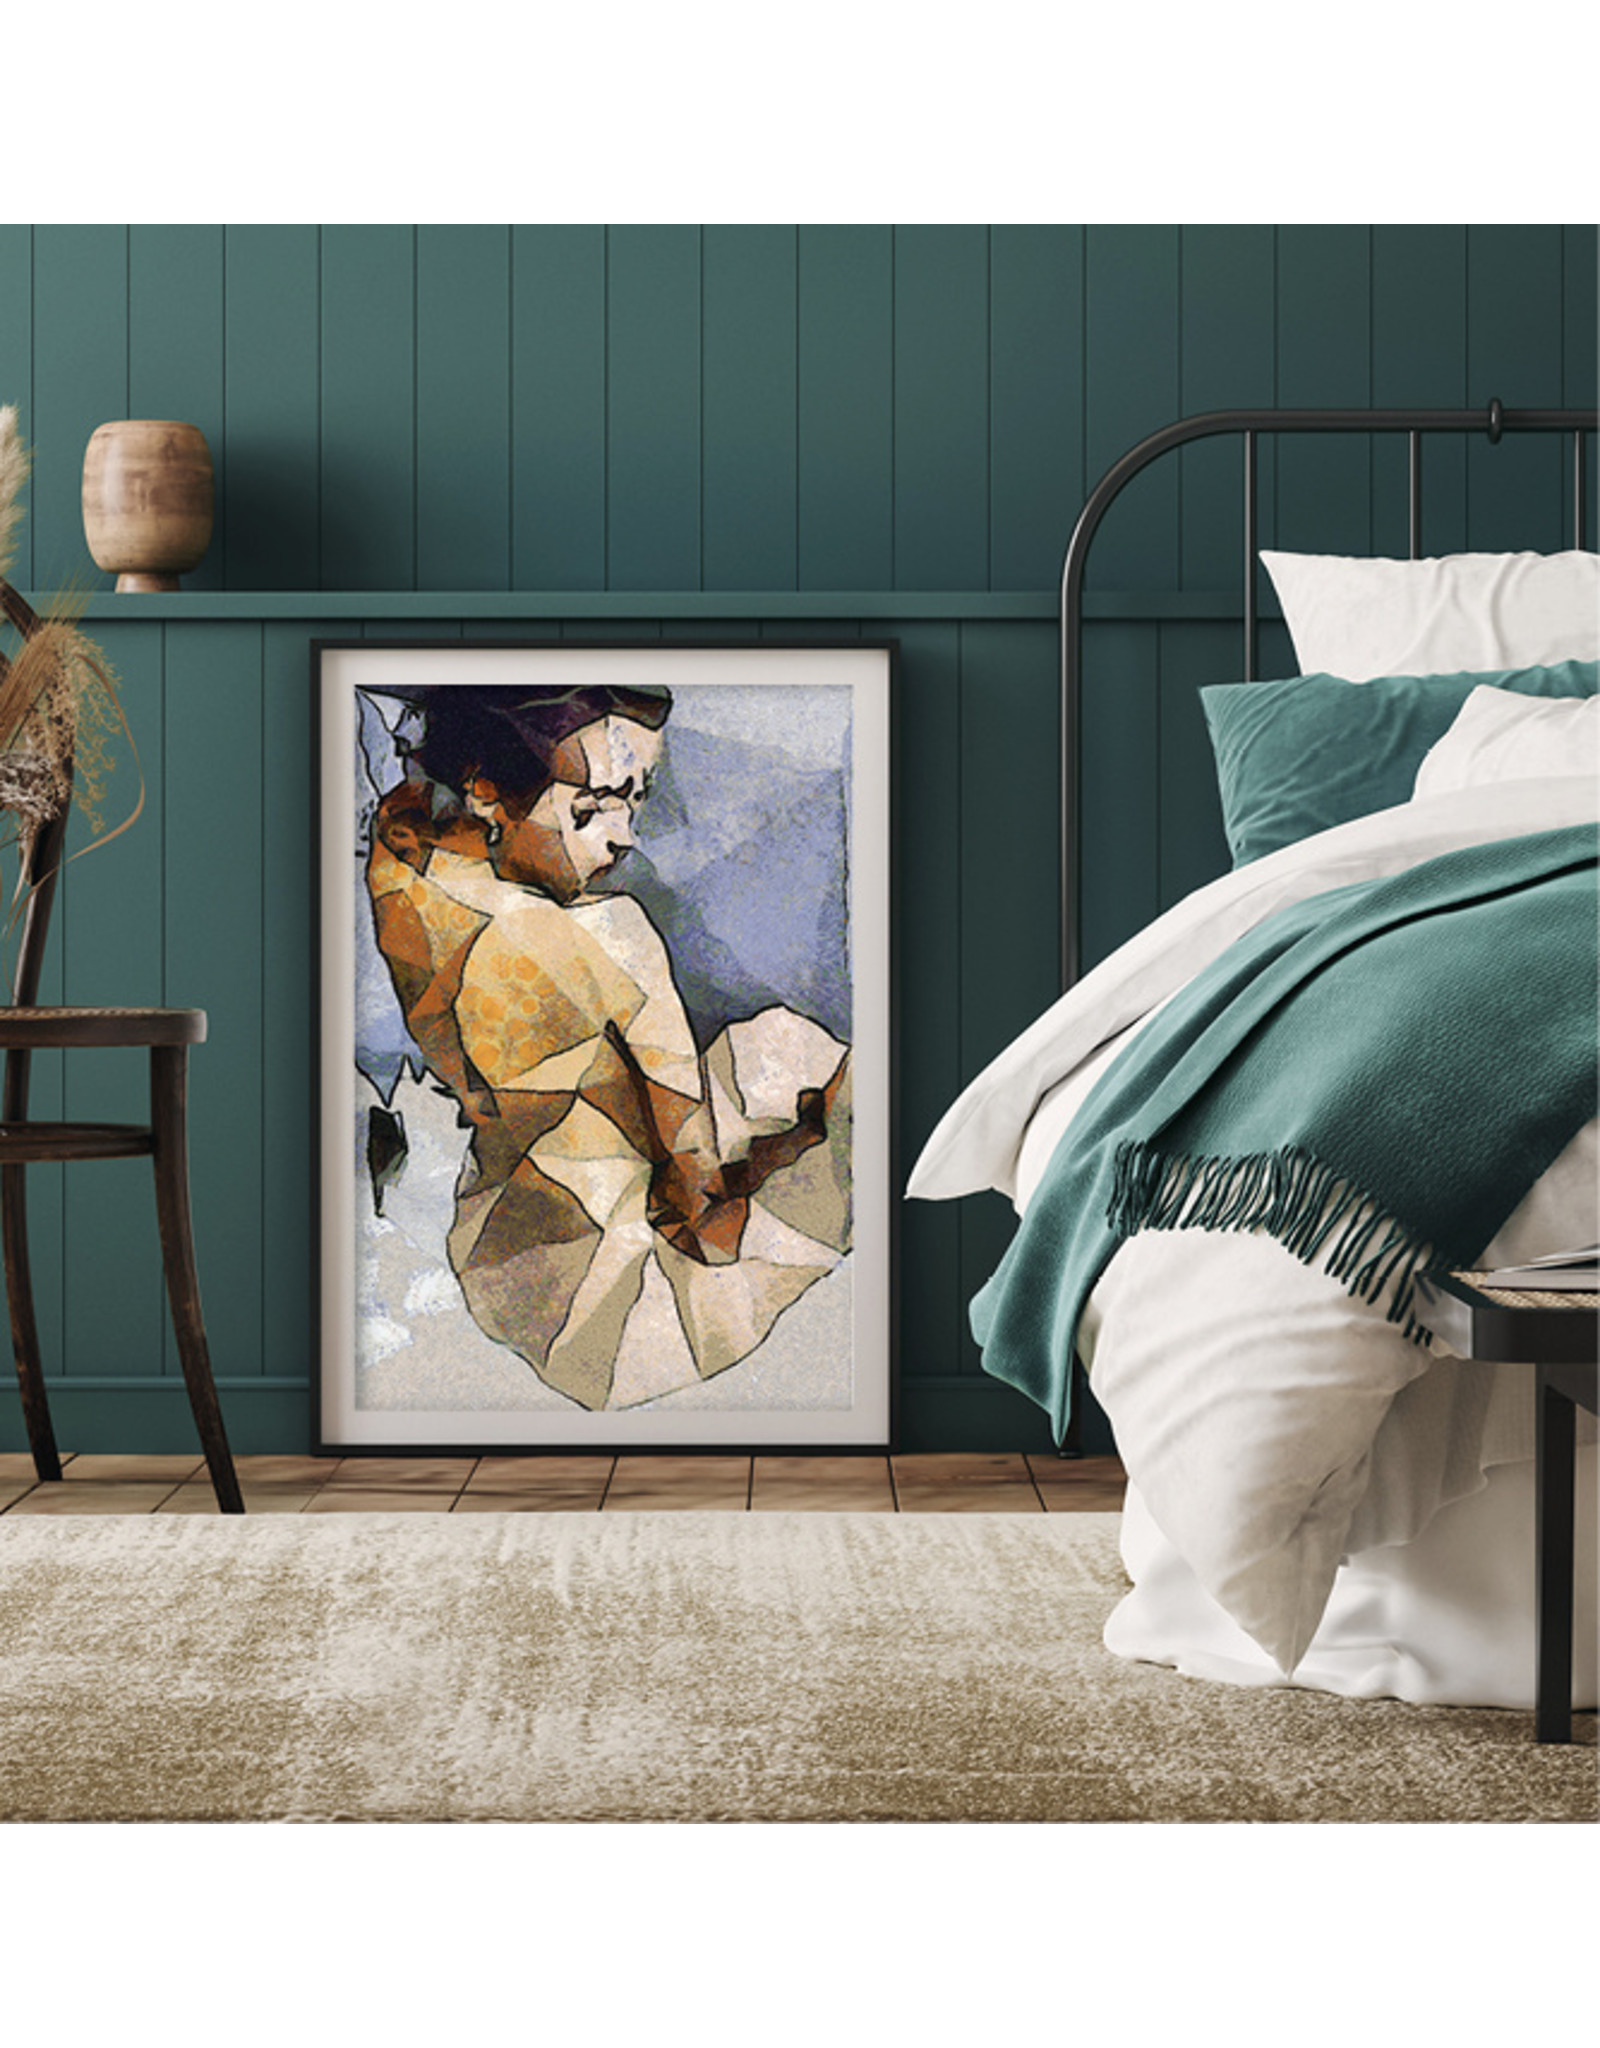 Dunnebier Home Poster Painting of a woman